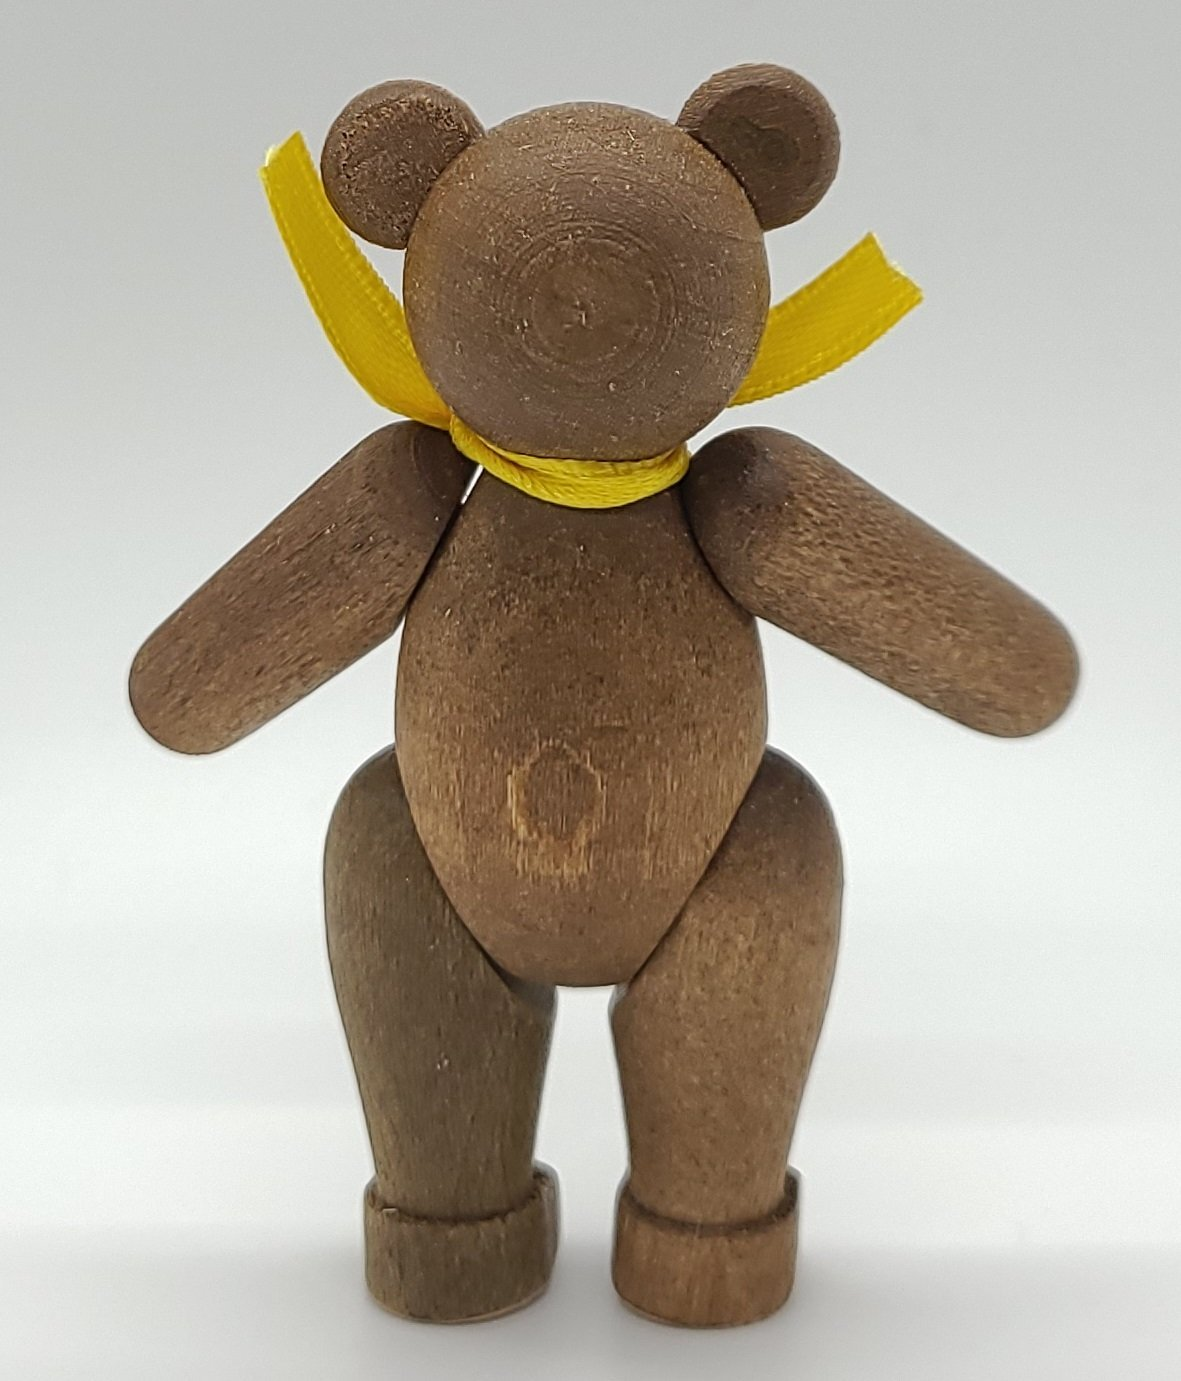 Handmade Wood Brown Bear with movable joints with yellow scarf - Schmidt Christmas Market Christmas Decoration